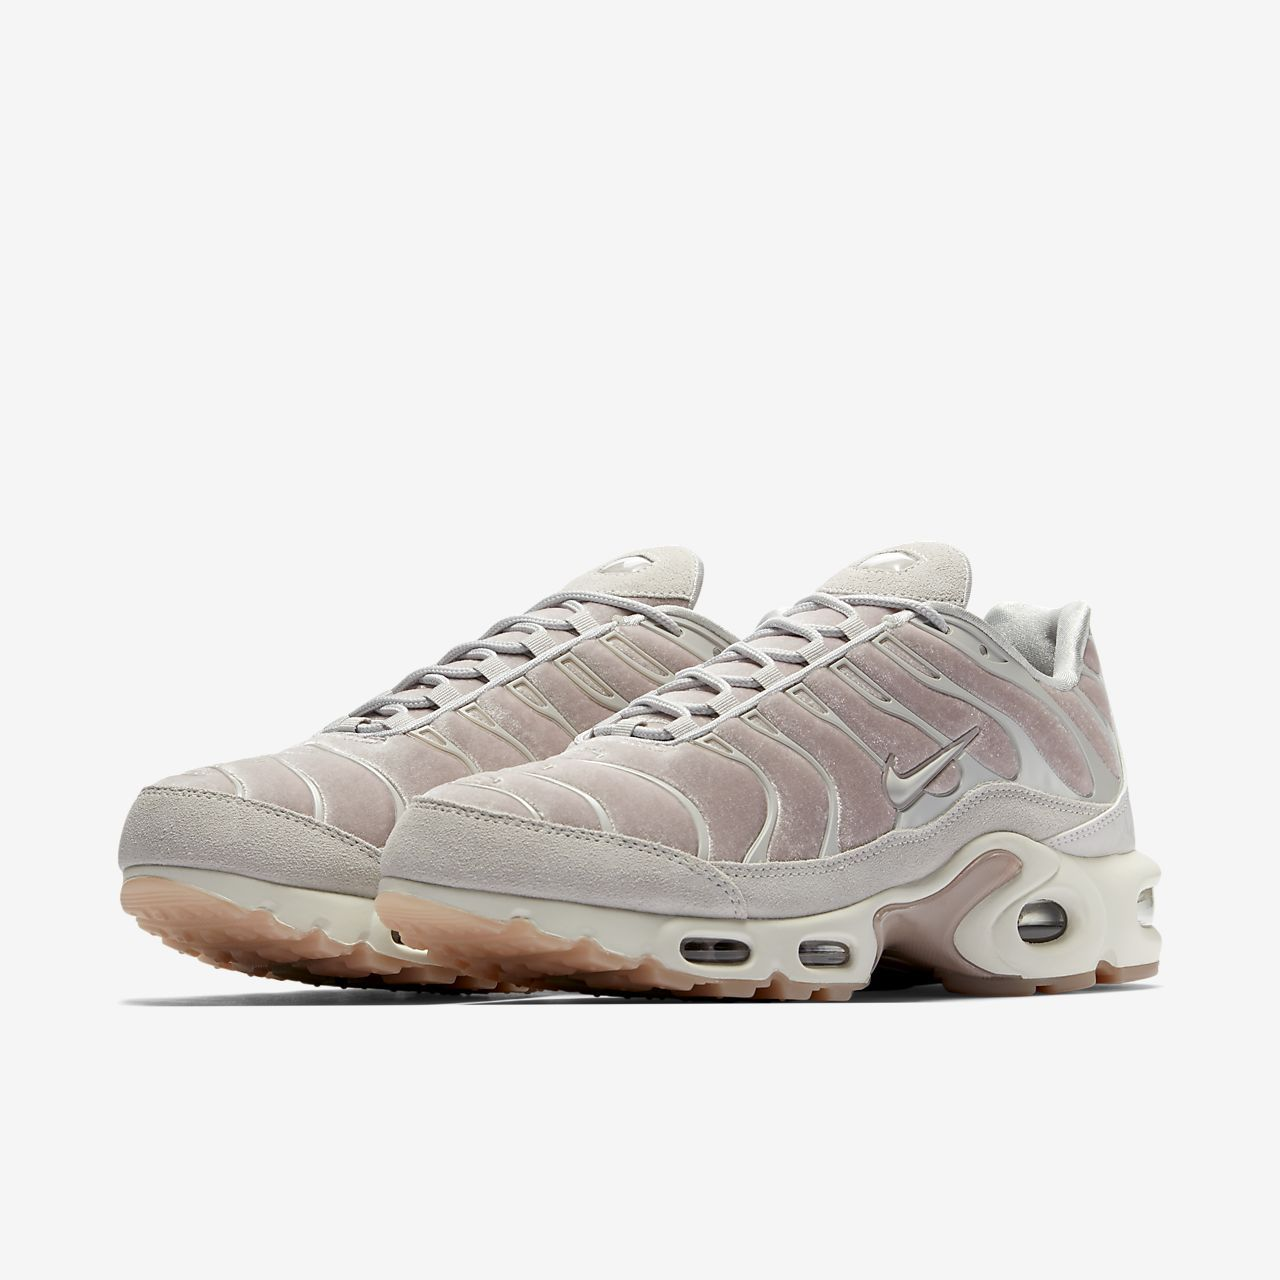 Nike Air Max Plus LX Lux Velvet Particle Pink | Nike air max